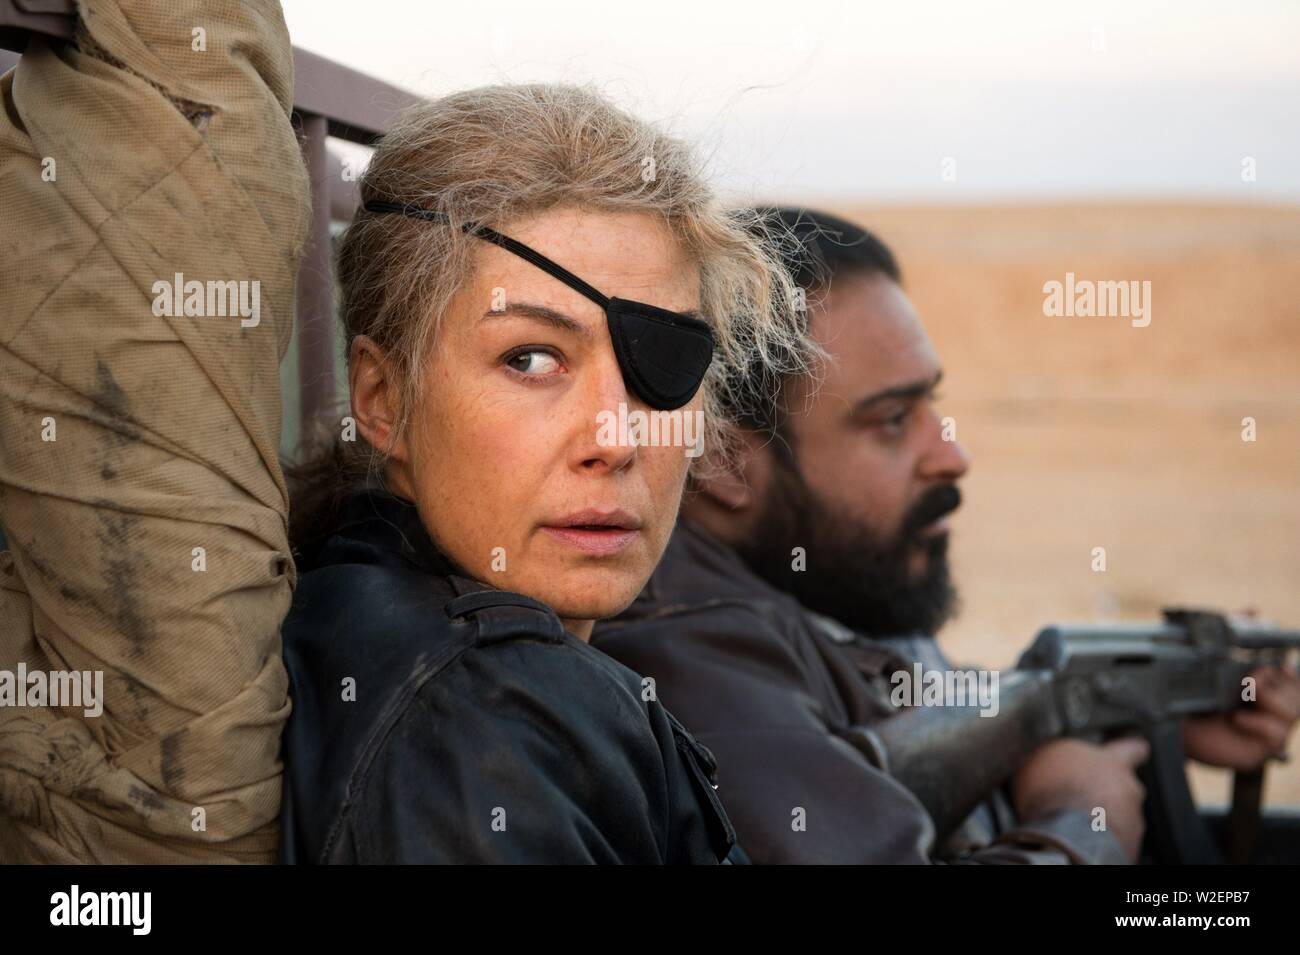 ROSAMUND PIKE in A PRIVATE WAT (2018). Credit: Aviron Pictures / Acacia Filmed Entertainment / Denver and D / Album - Stock Image